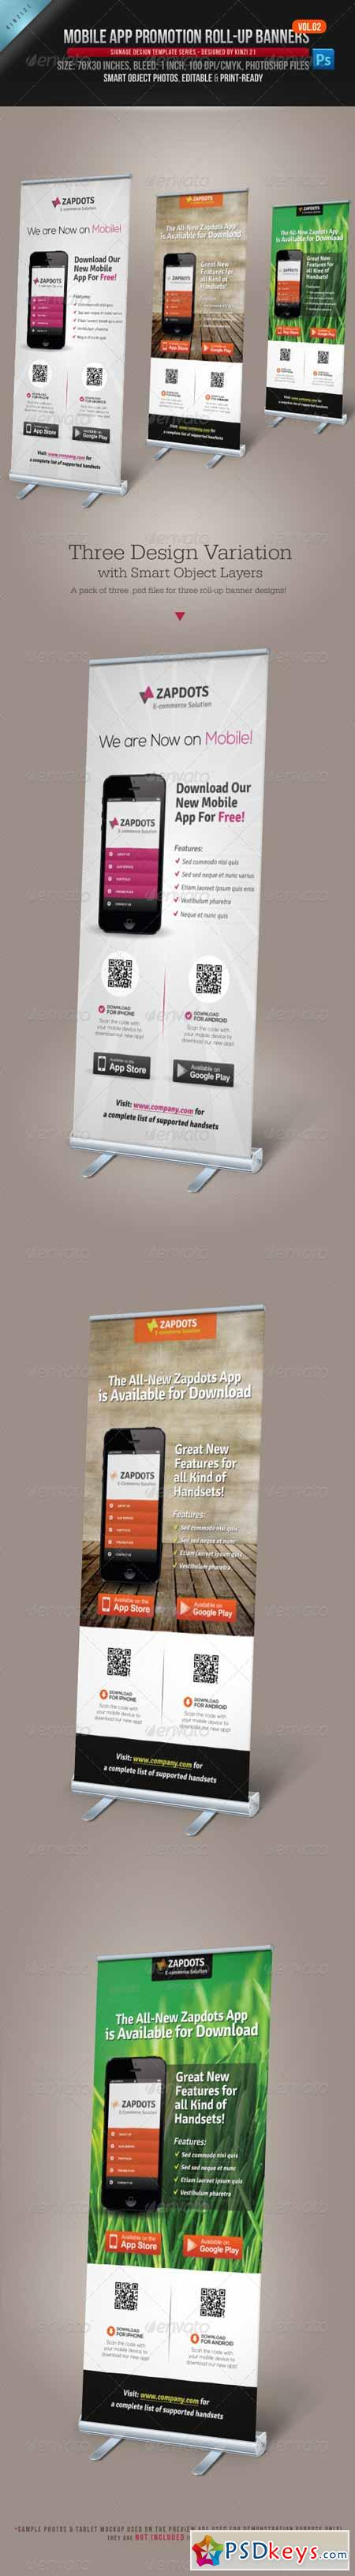 Mobile App Promotion Roll-up Banners Vol.02 4689886